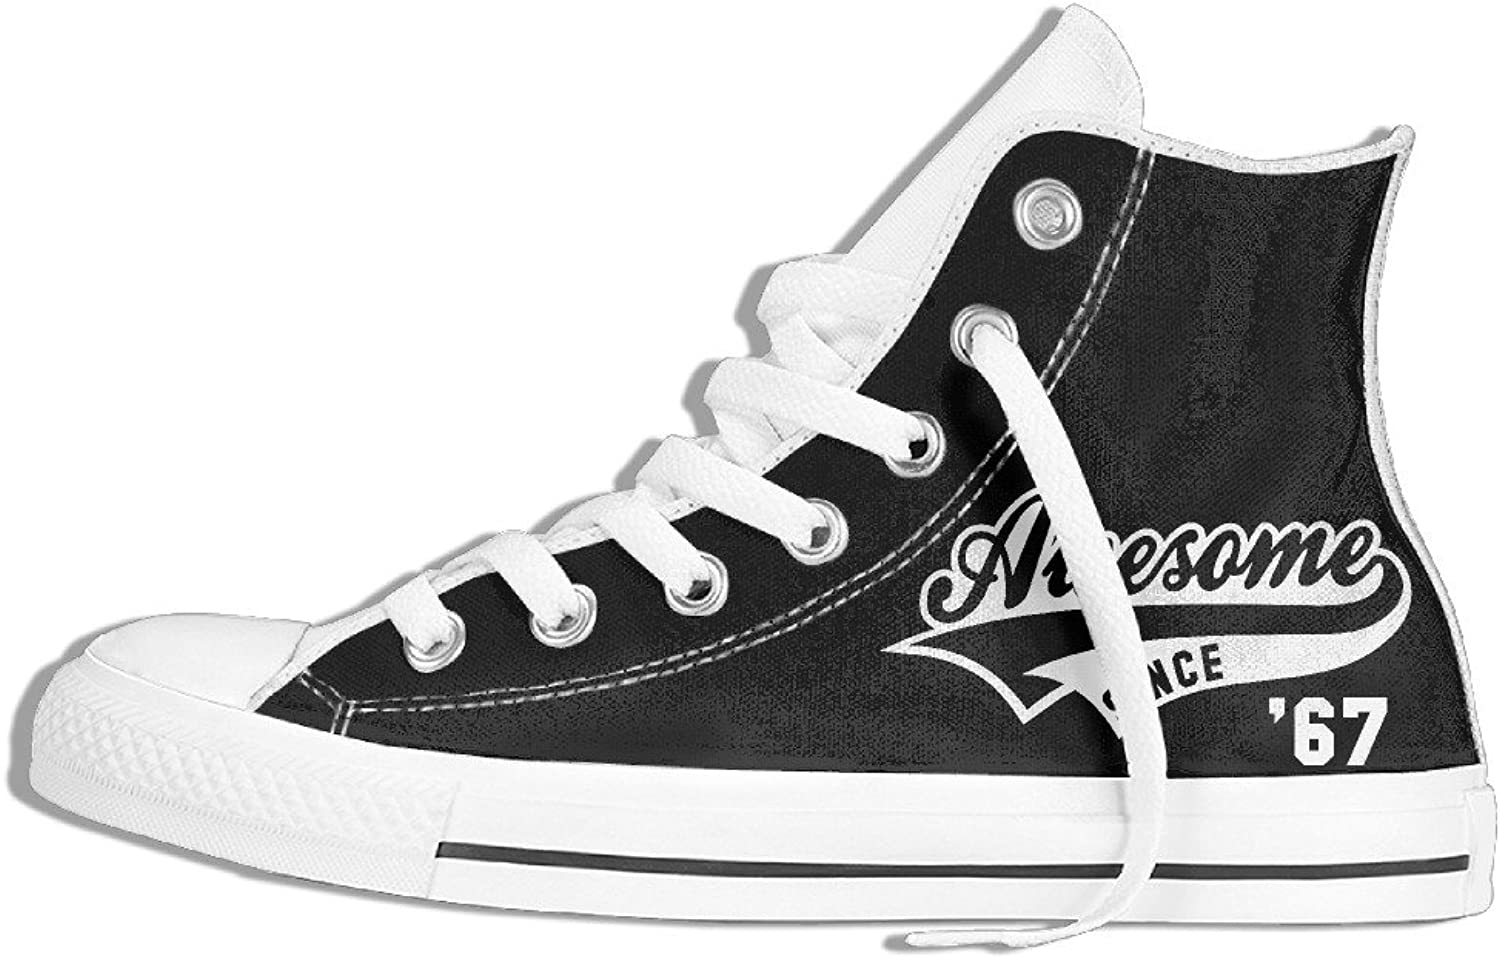 Efbj Awesome Since 1967 Birthday Unisex Sport High Top Sneakers shoes for Men and Women